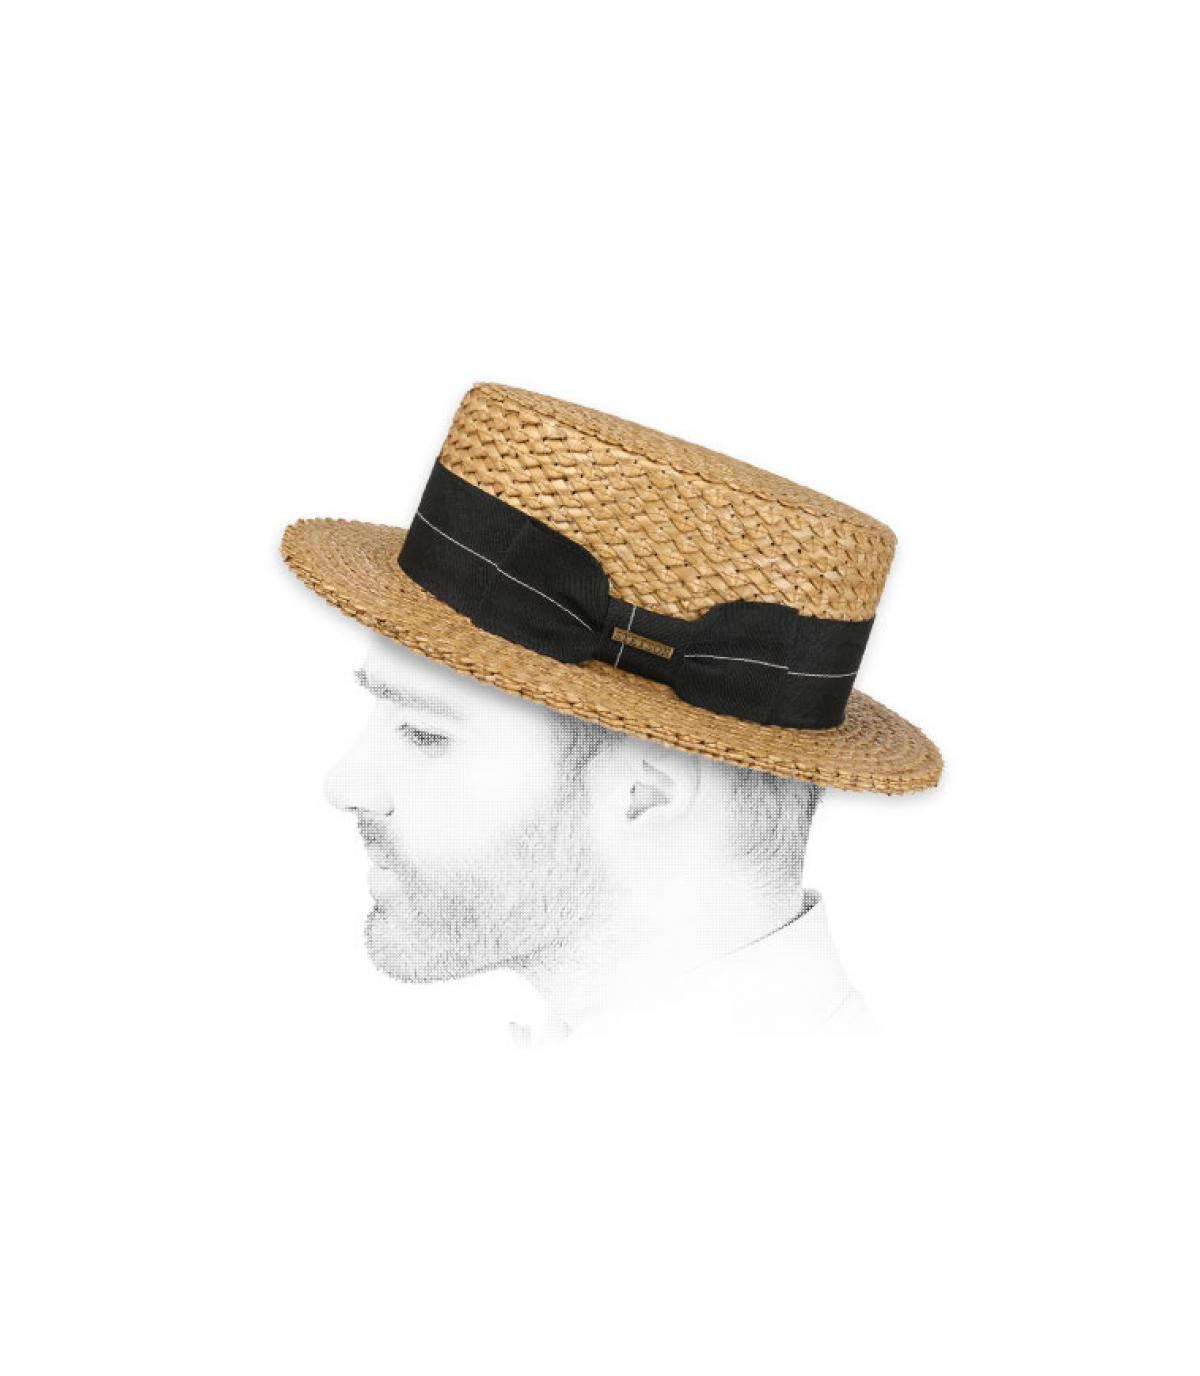 Stetson straw boater hat